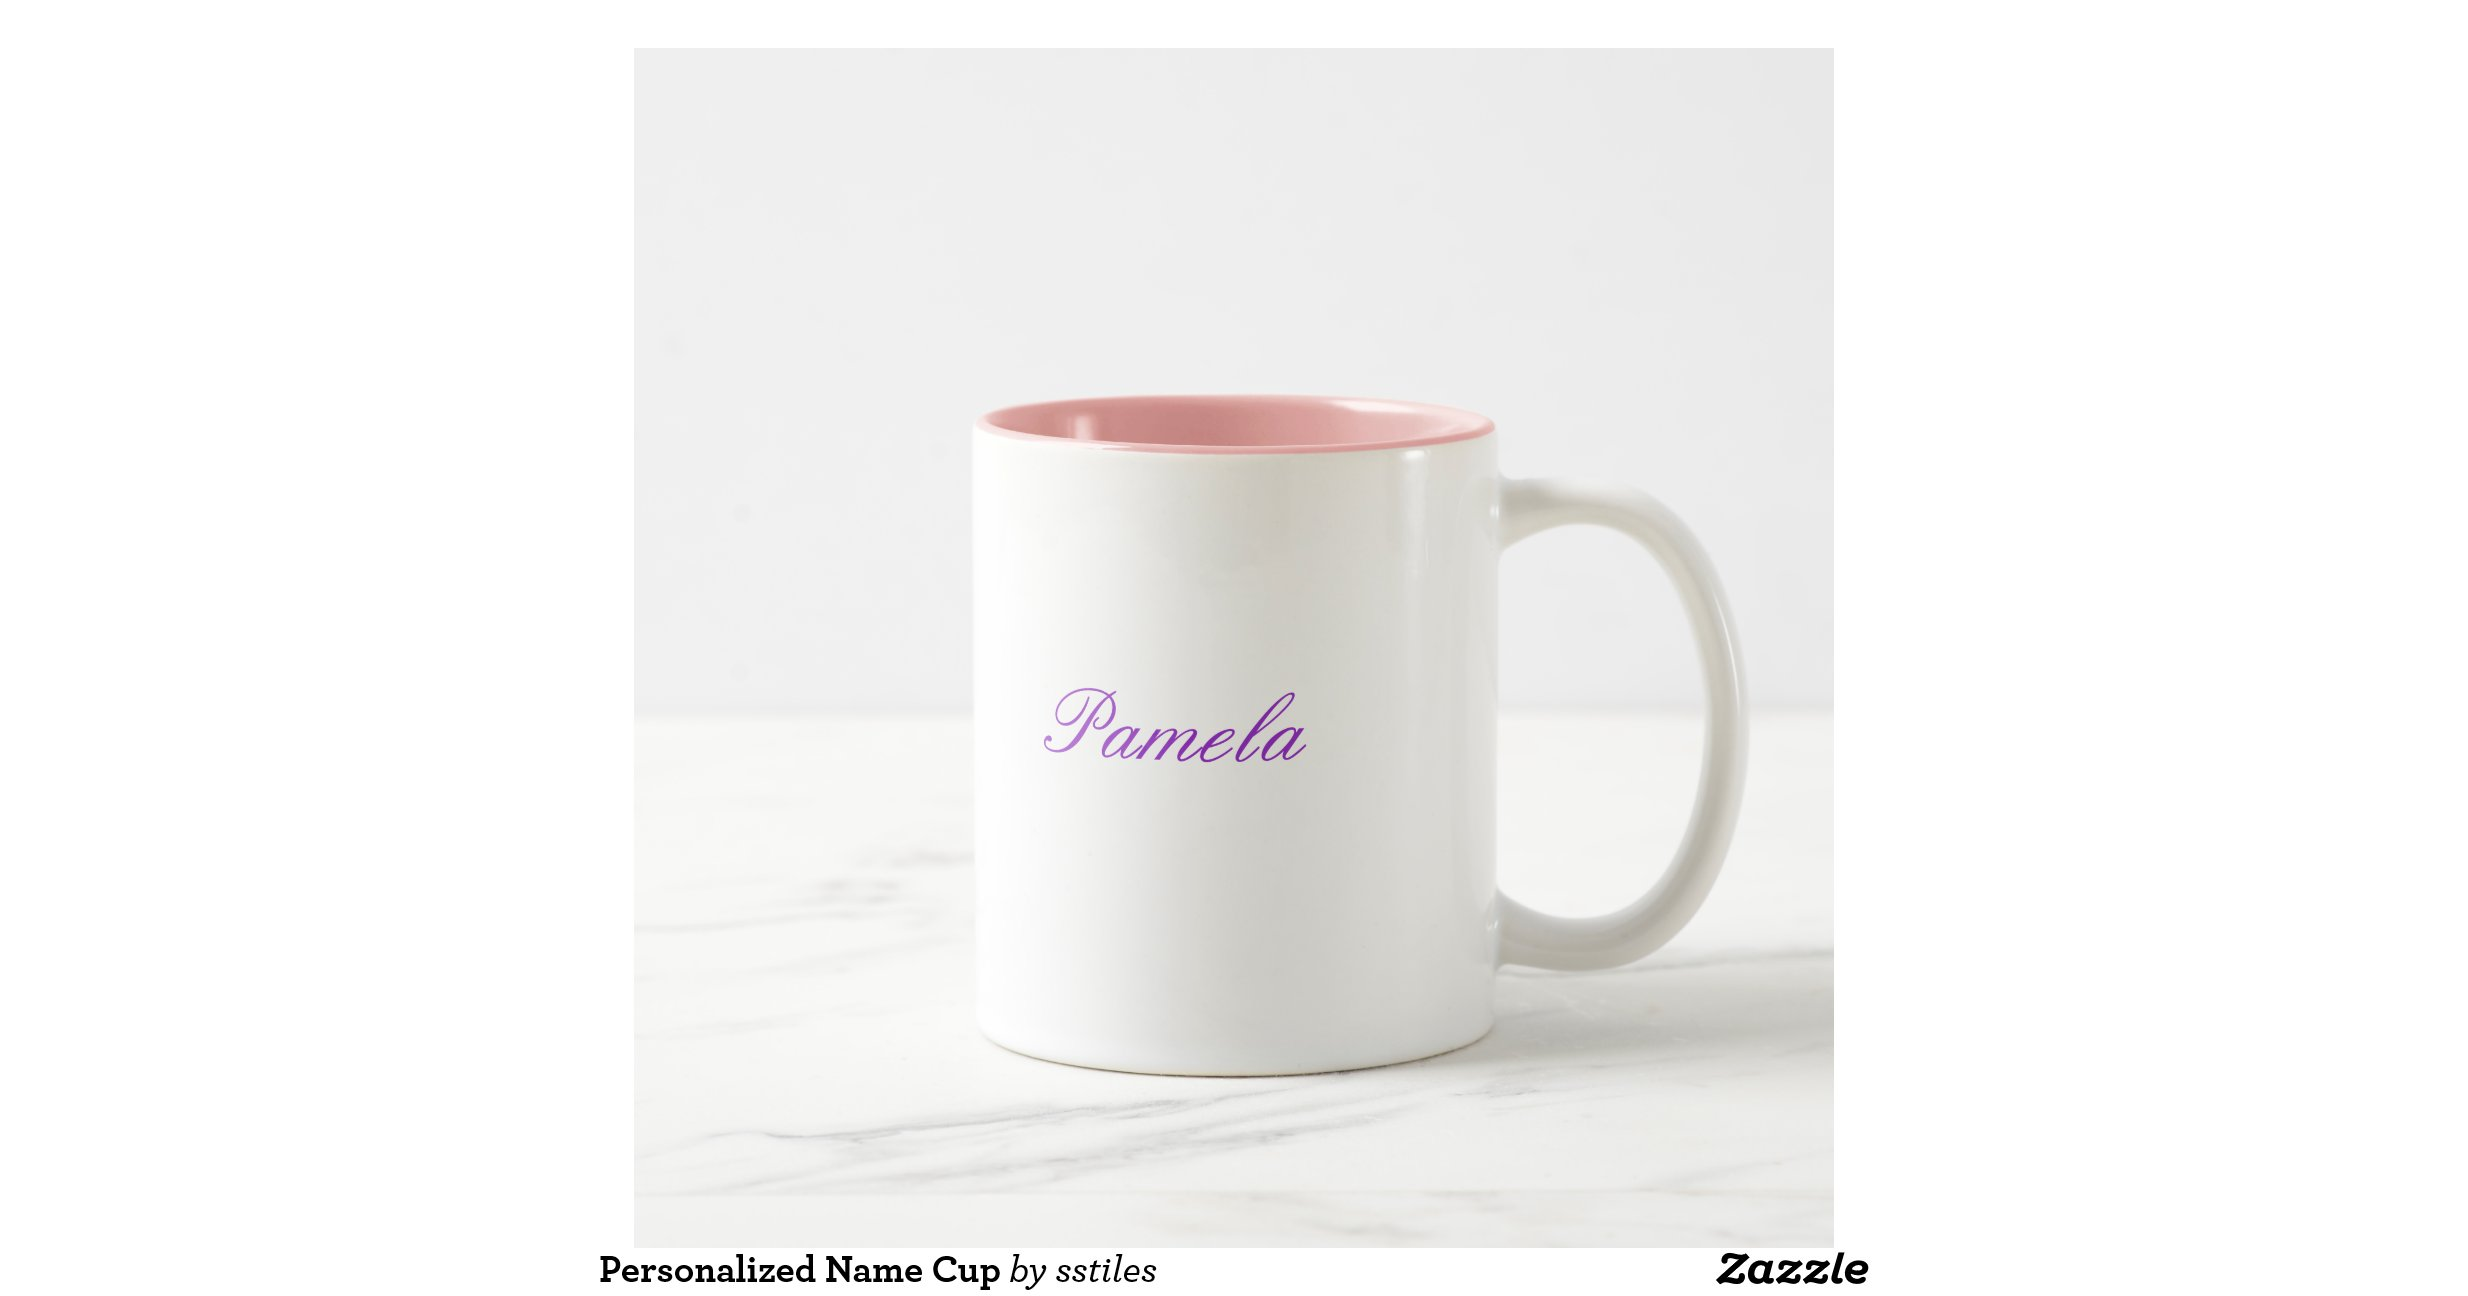 Personalized name cup two tone coffee mug zazzle